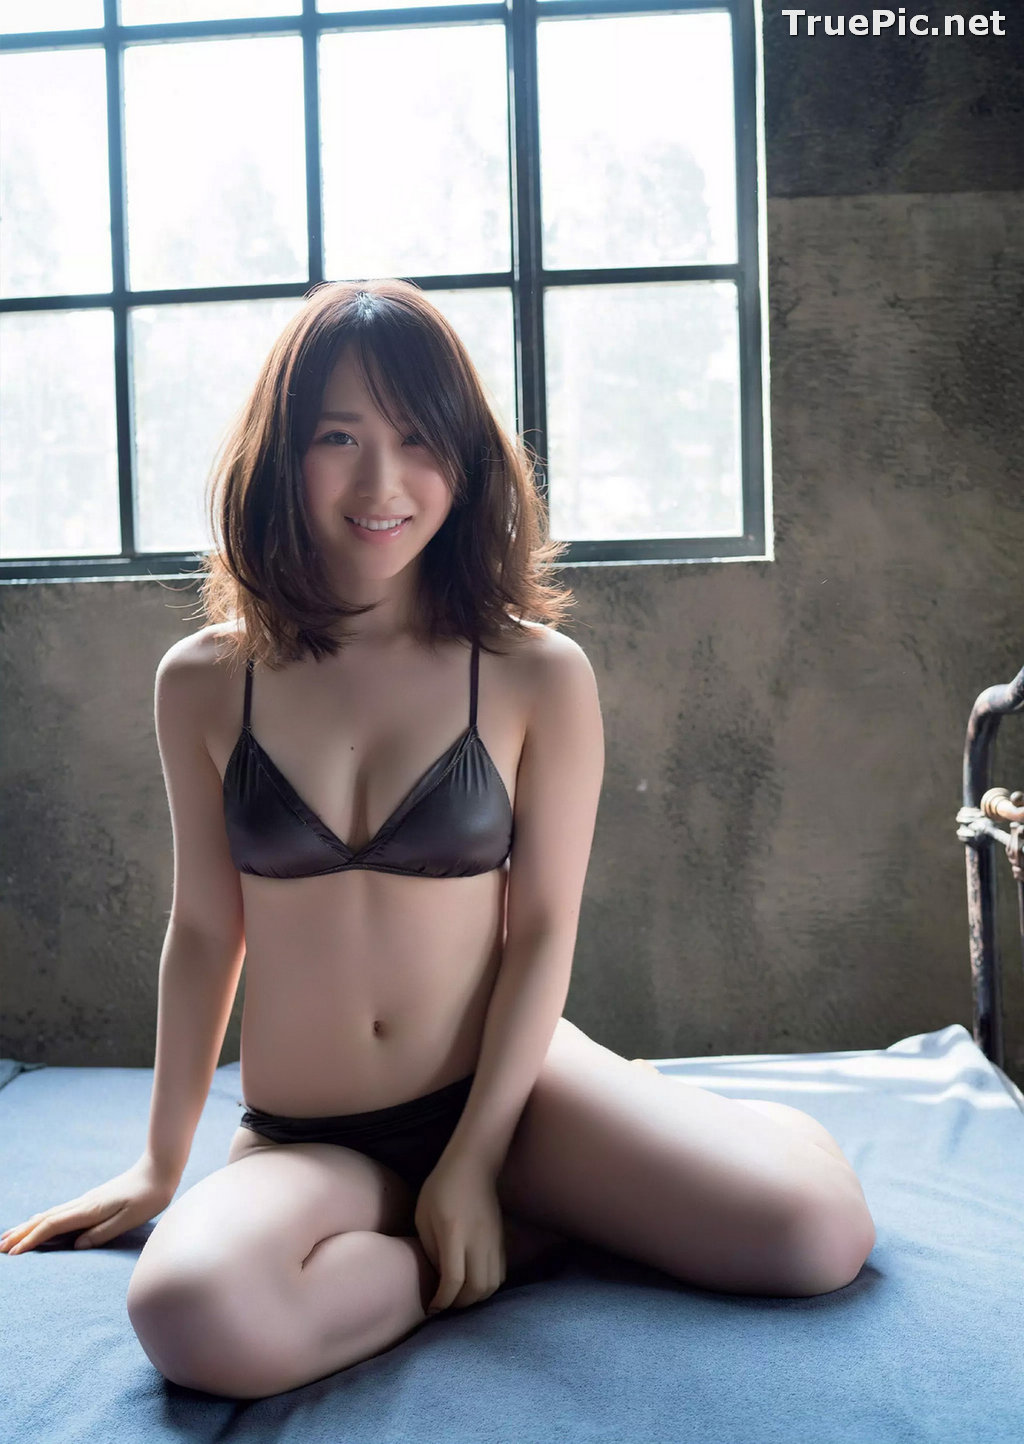 Image Japanese Beauty – Juri Takahashi - Sexy Picture Collection 2020 - TruePic.net - Picture-5